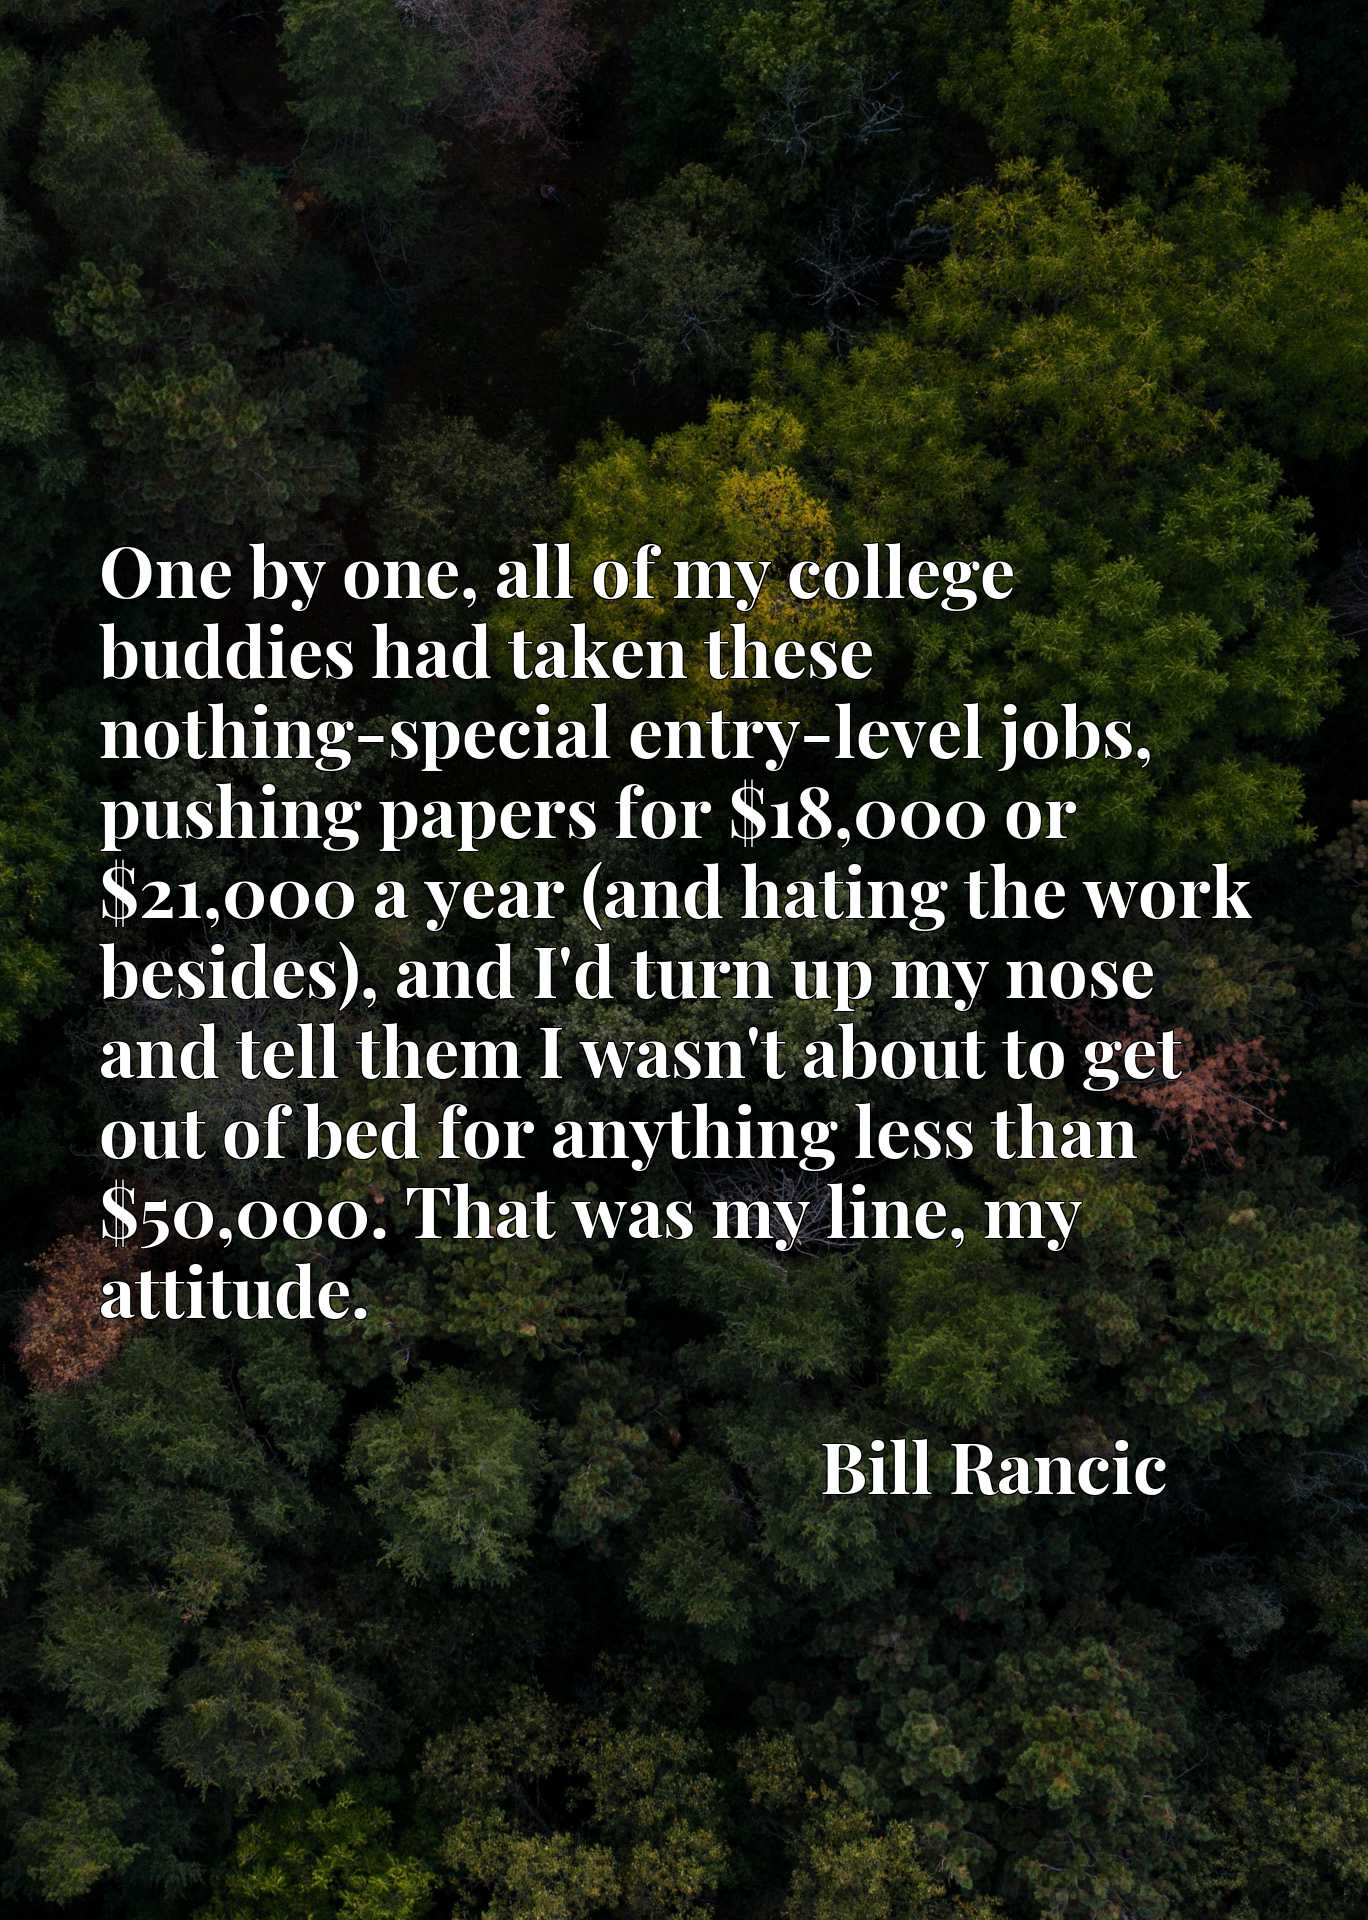 One by one, all of my college buddies had taken these nothing-special entry-level jobs, pushing papers for $18,000 or $21,000 a year (and hating the work besides), and I'd turn up my nose and tell them I wasn't about to get out of bed for anything less than $50,000. That was my line, my attitude.